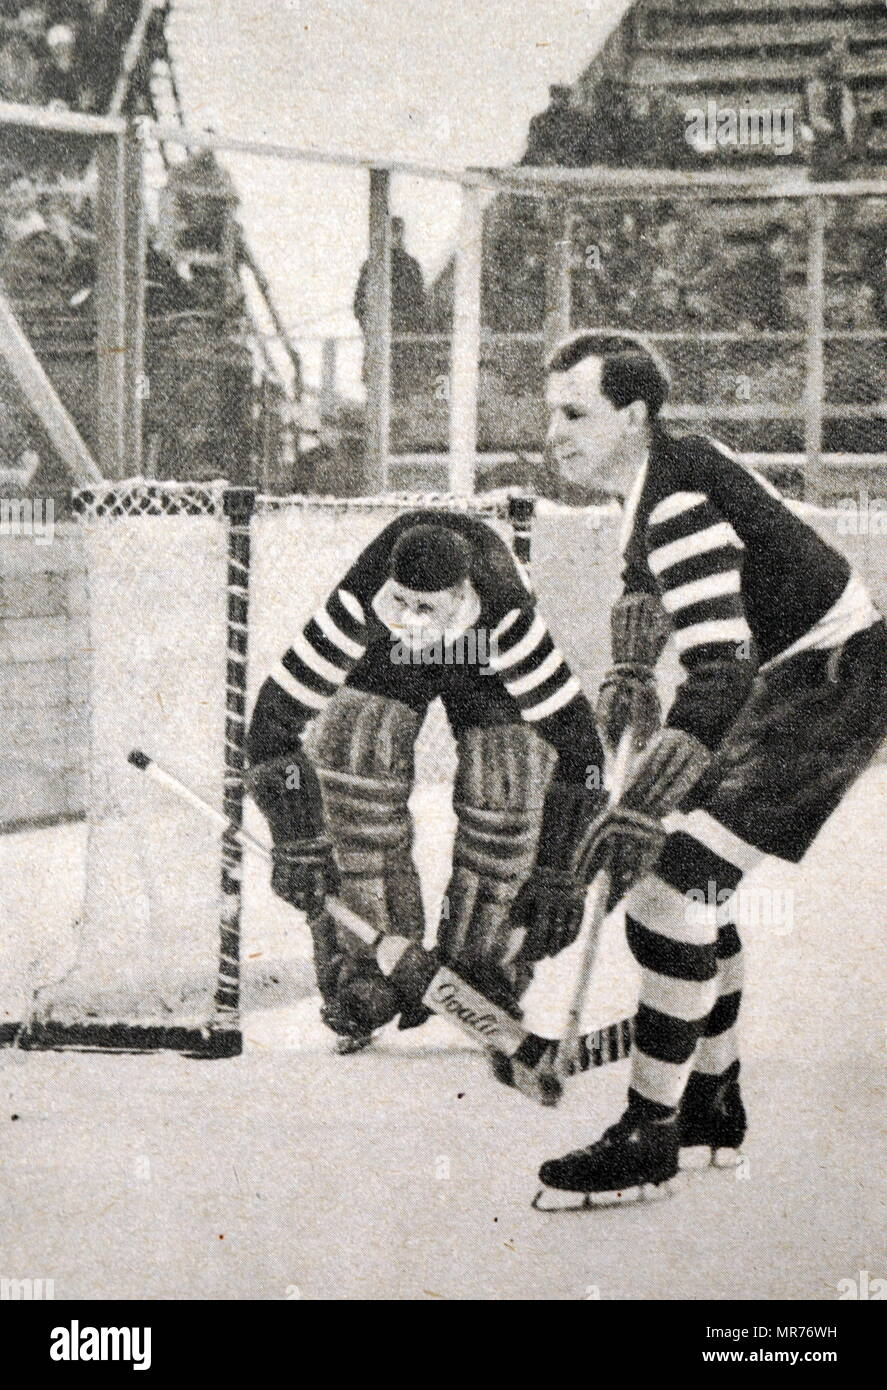 Photograph of Germany Vs. Poland in the ice hockey at the 1932 winter Olympic games. - Stock Image